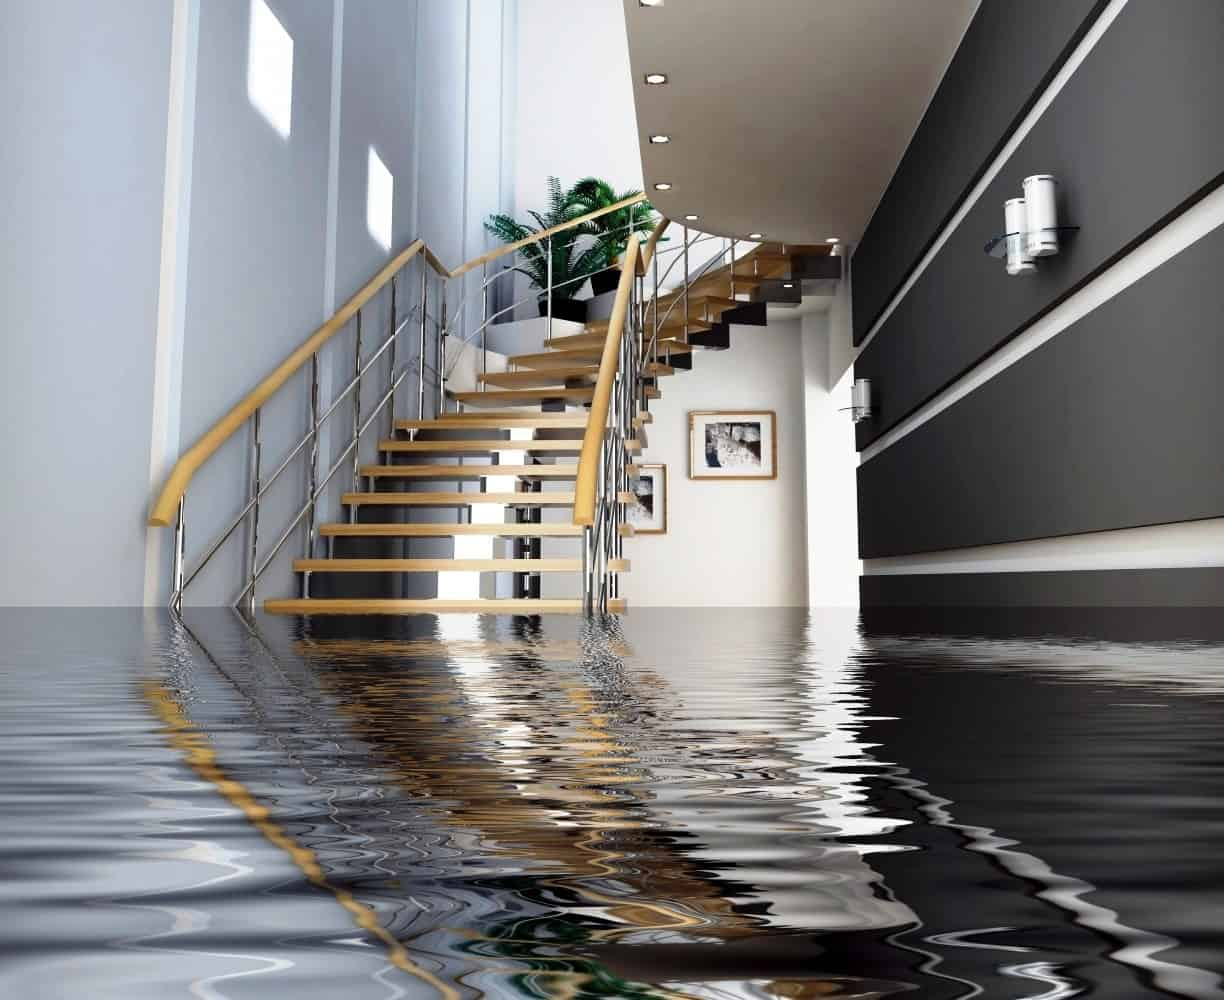 flood water damage inside home